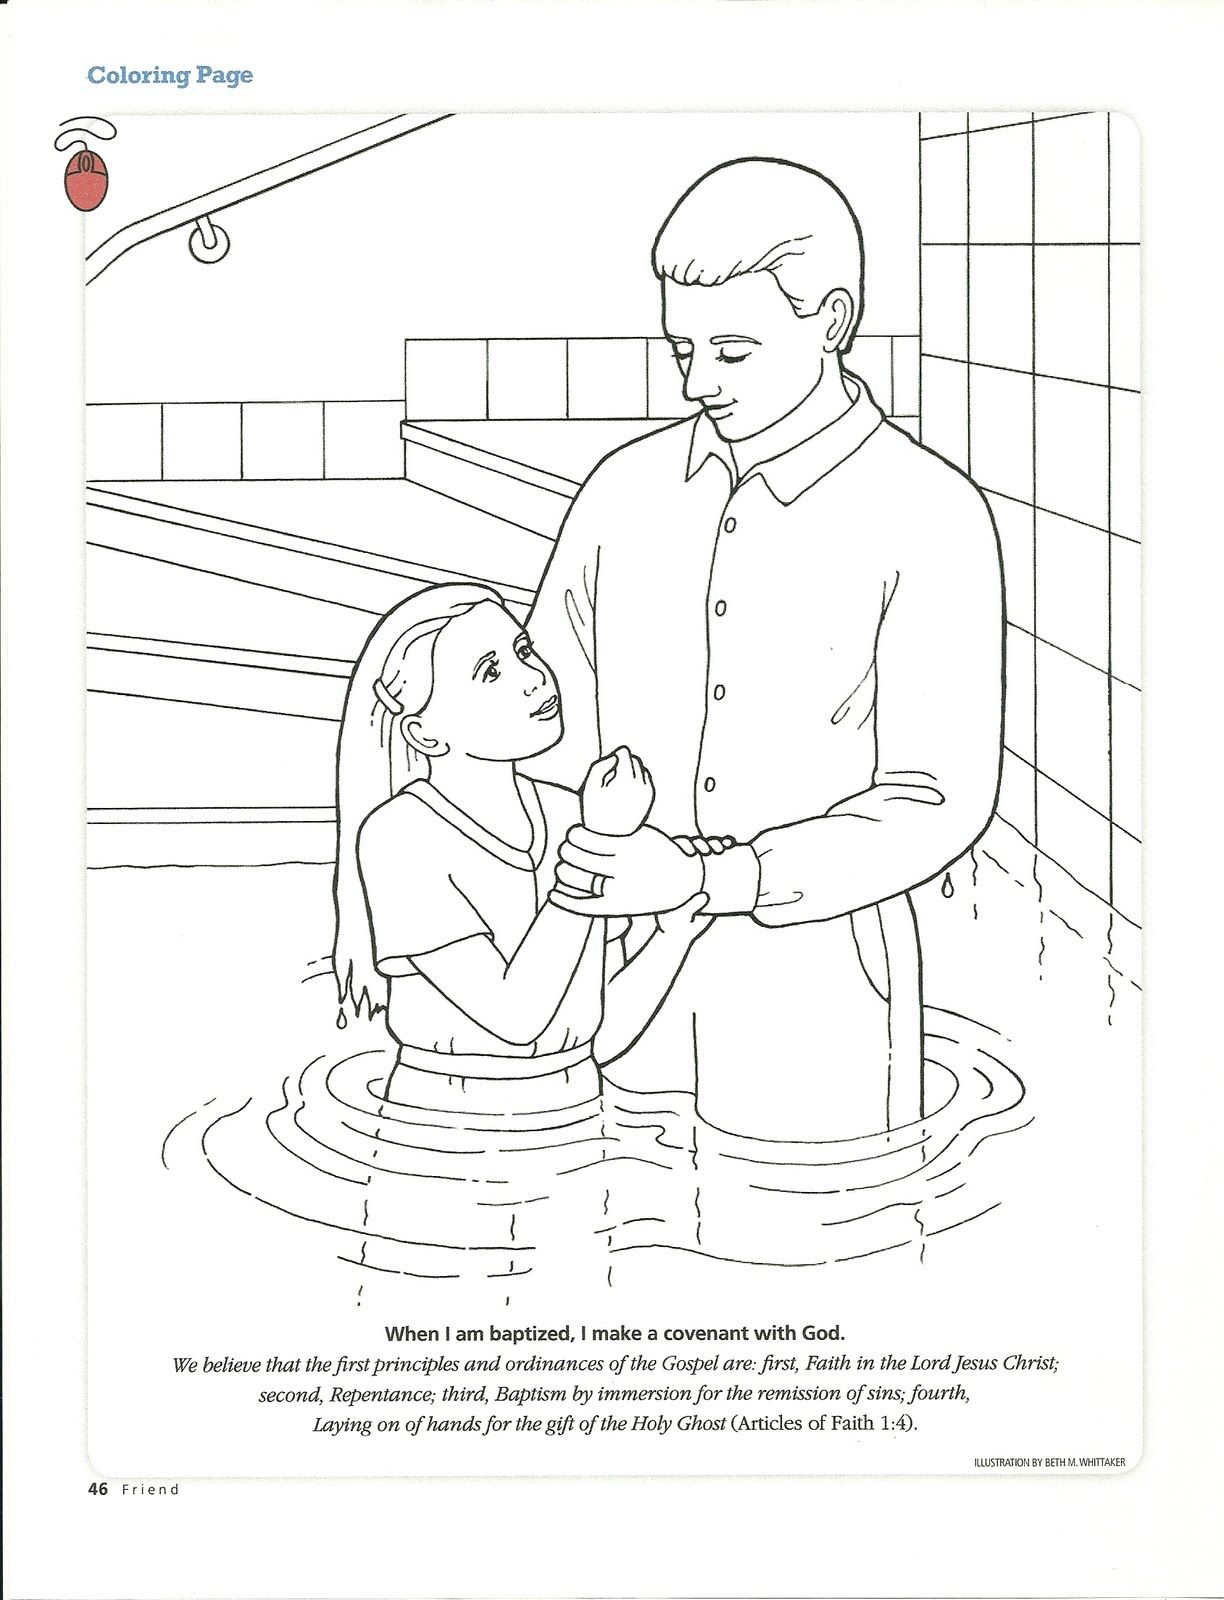 girl baptism | CHURCH | Pinterest | Primary lessons and Journal